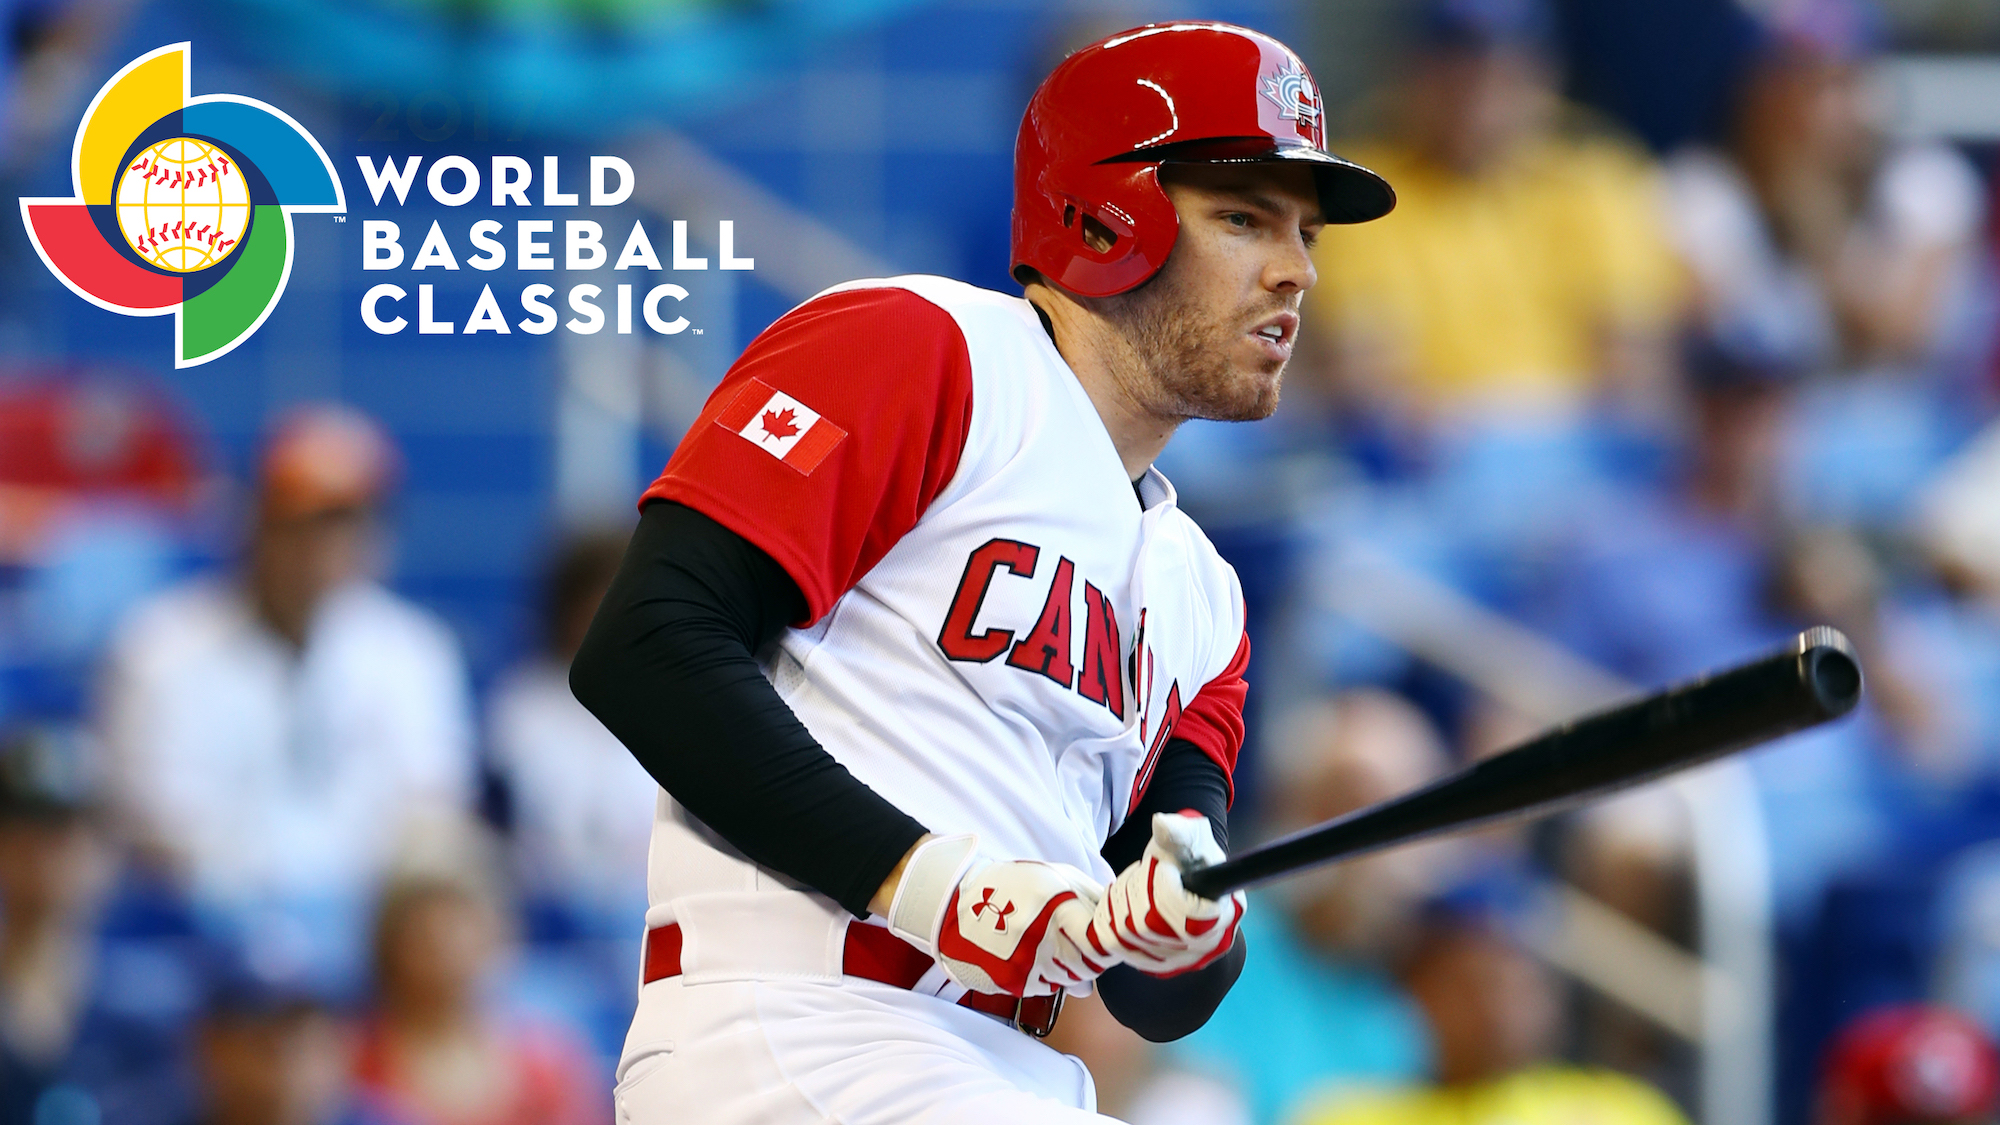 16 nations, dates, venues announced for 2021 World Baseball Classic